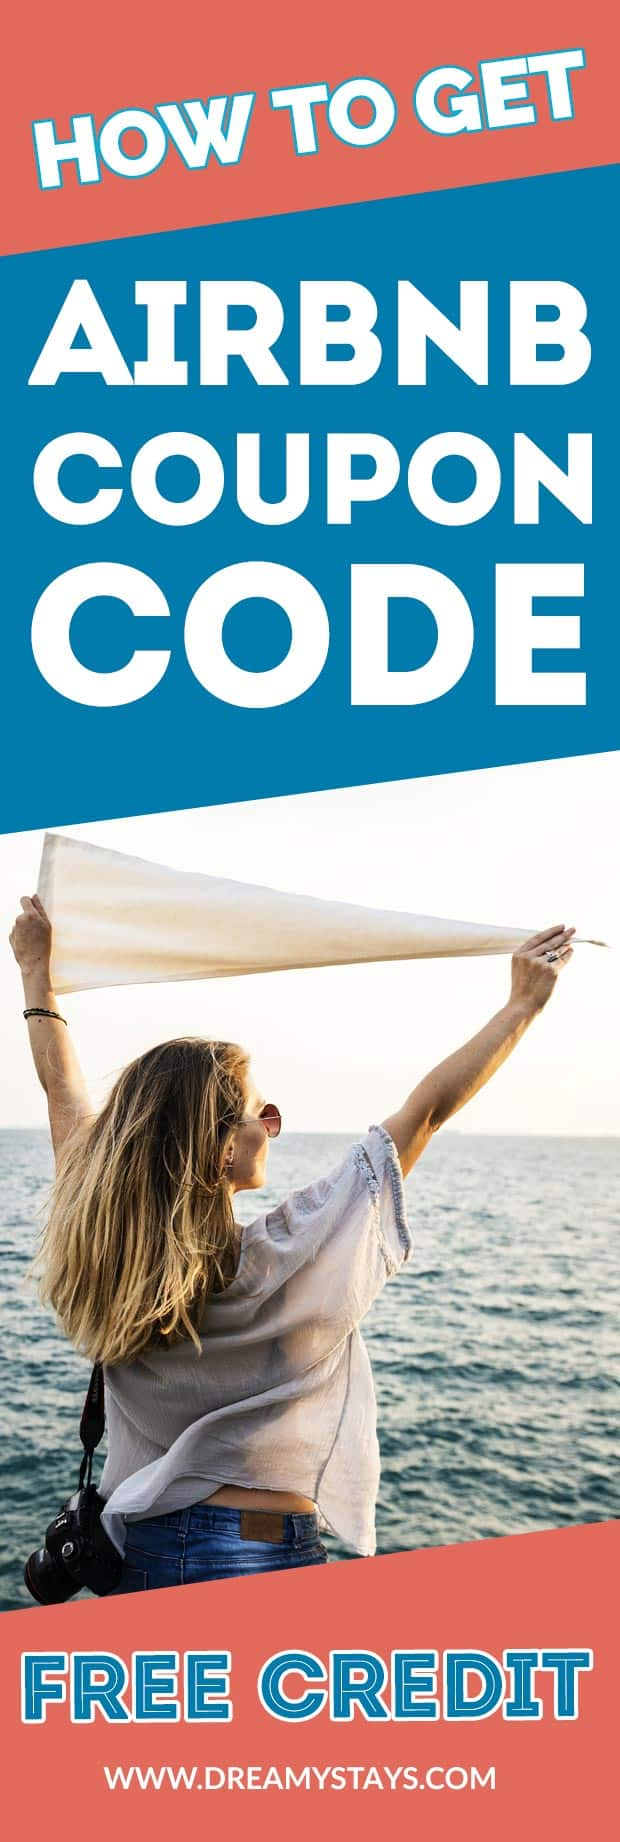 FREE! Airbnb Coupon Code: Get $40 off your next booking